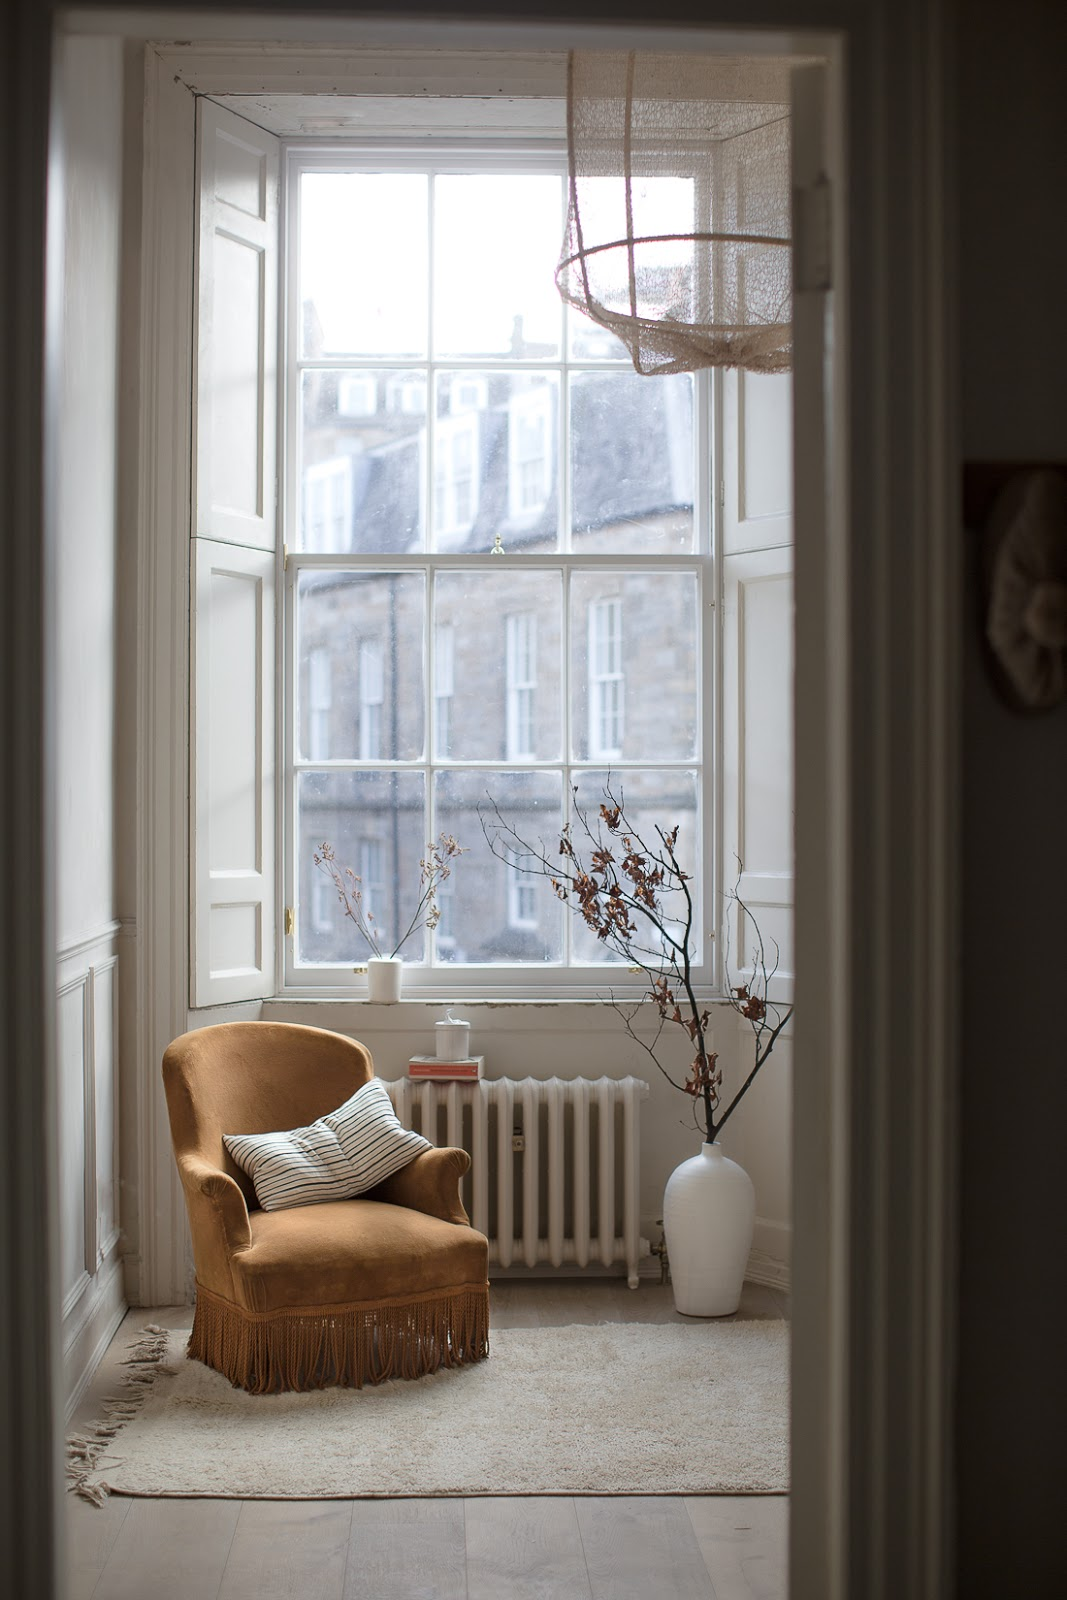 ilaria fatone - a comforting and minimal home - the cozy corner beside the window